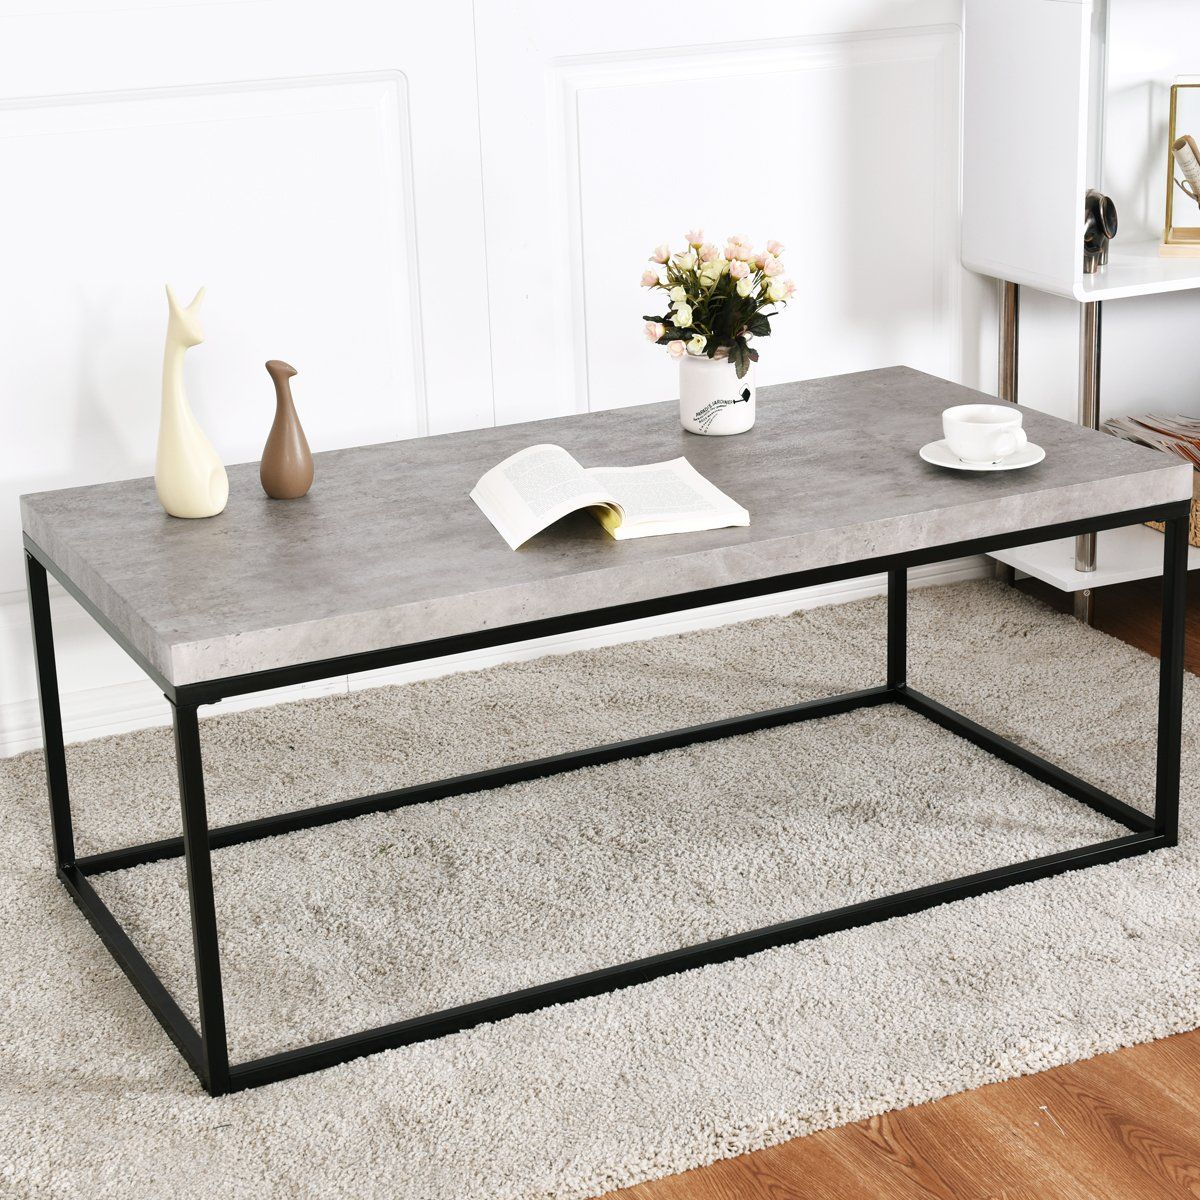 Mestler Occasional Table Set T580 1 3 Signature Design By Ashley Living Room Table Sets Living Room Coffee Table Brown Coffee Table [ 1760 x 2200 Pixel ]